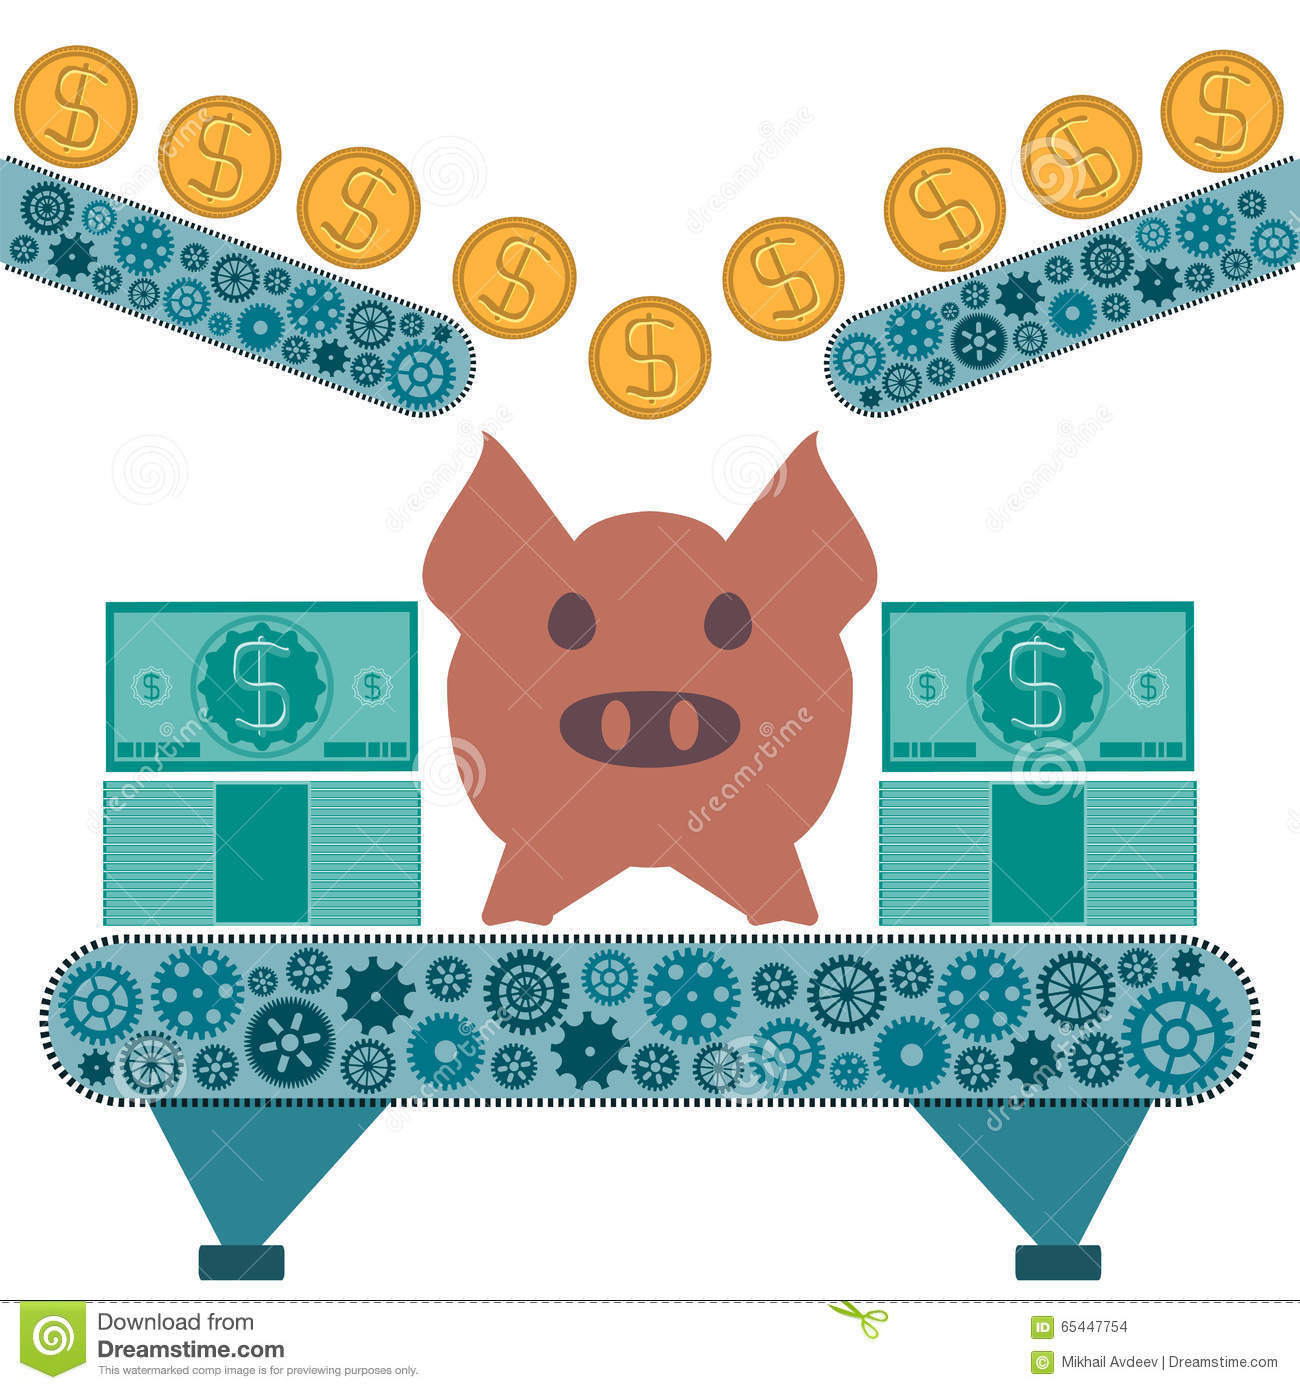 Gold dollar coins are rolling to a pig piggy Bank.